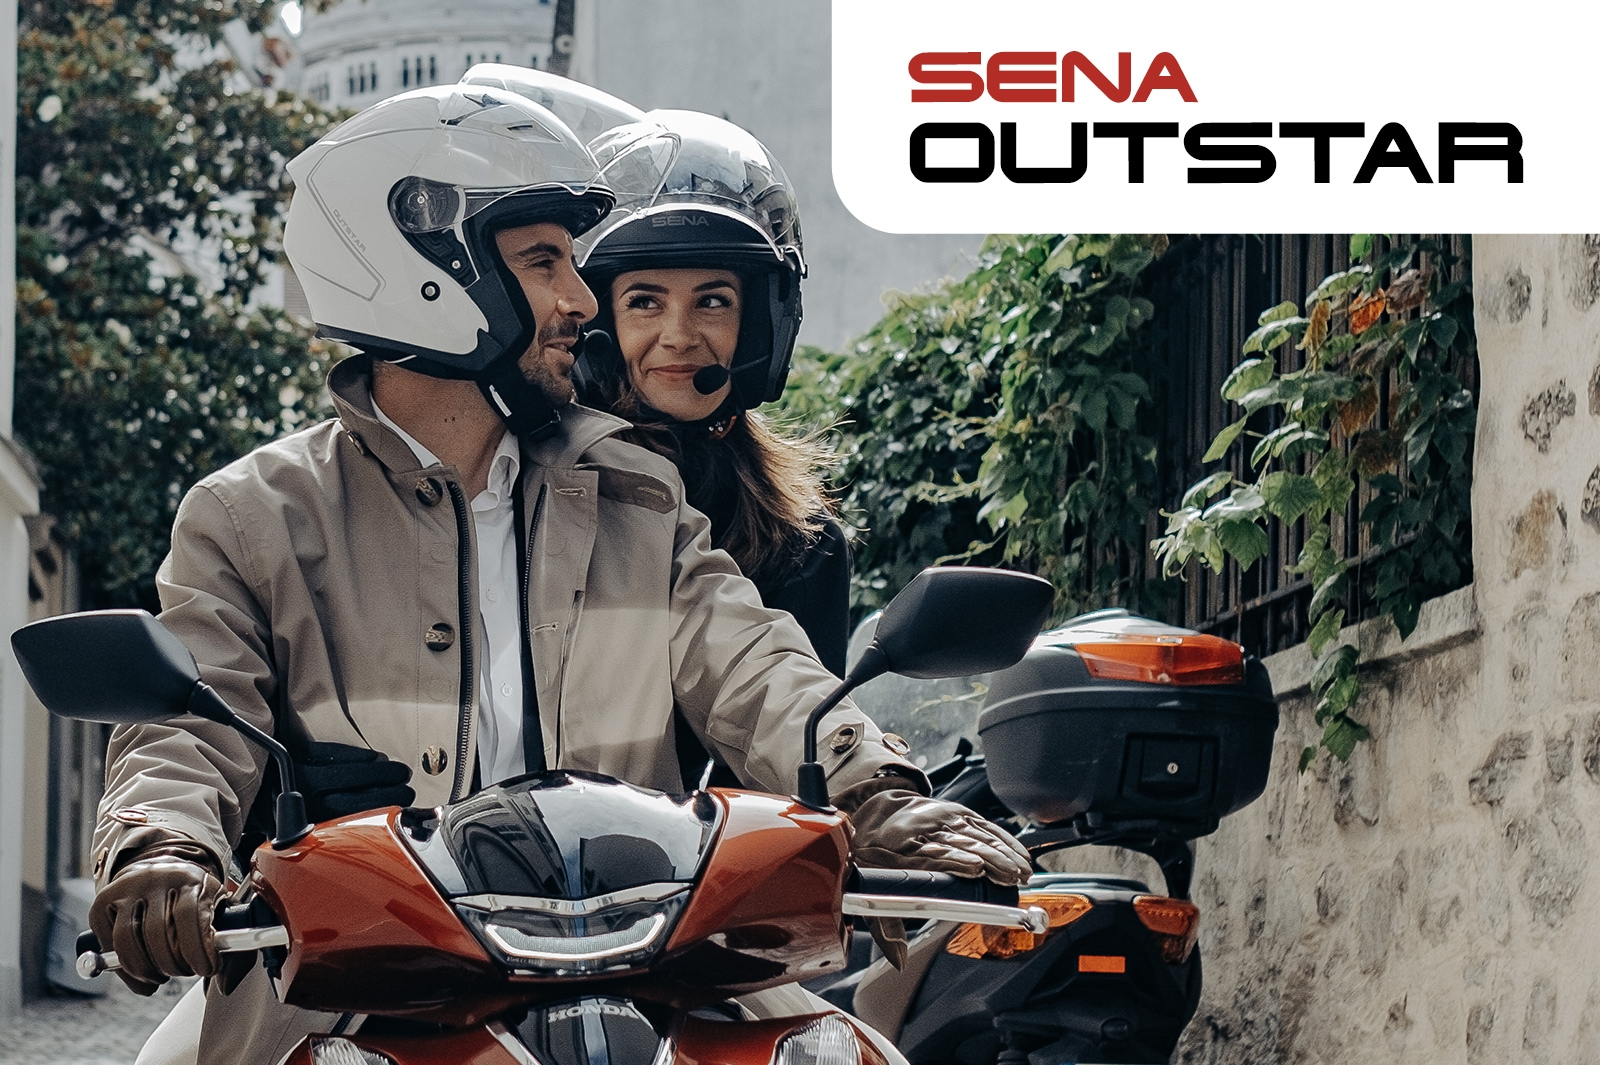 SENA : LE CASQUE JET SENA OUTSTAR EST MAINTENANT DISPONIBLE EN EUROPE!